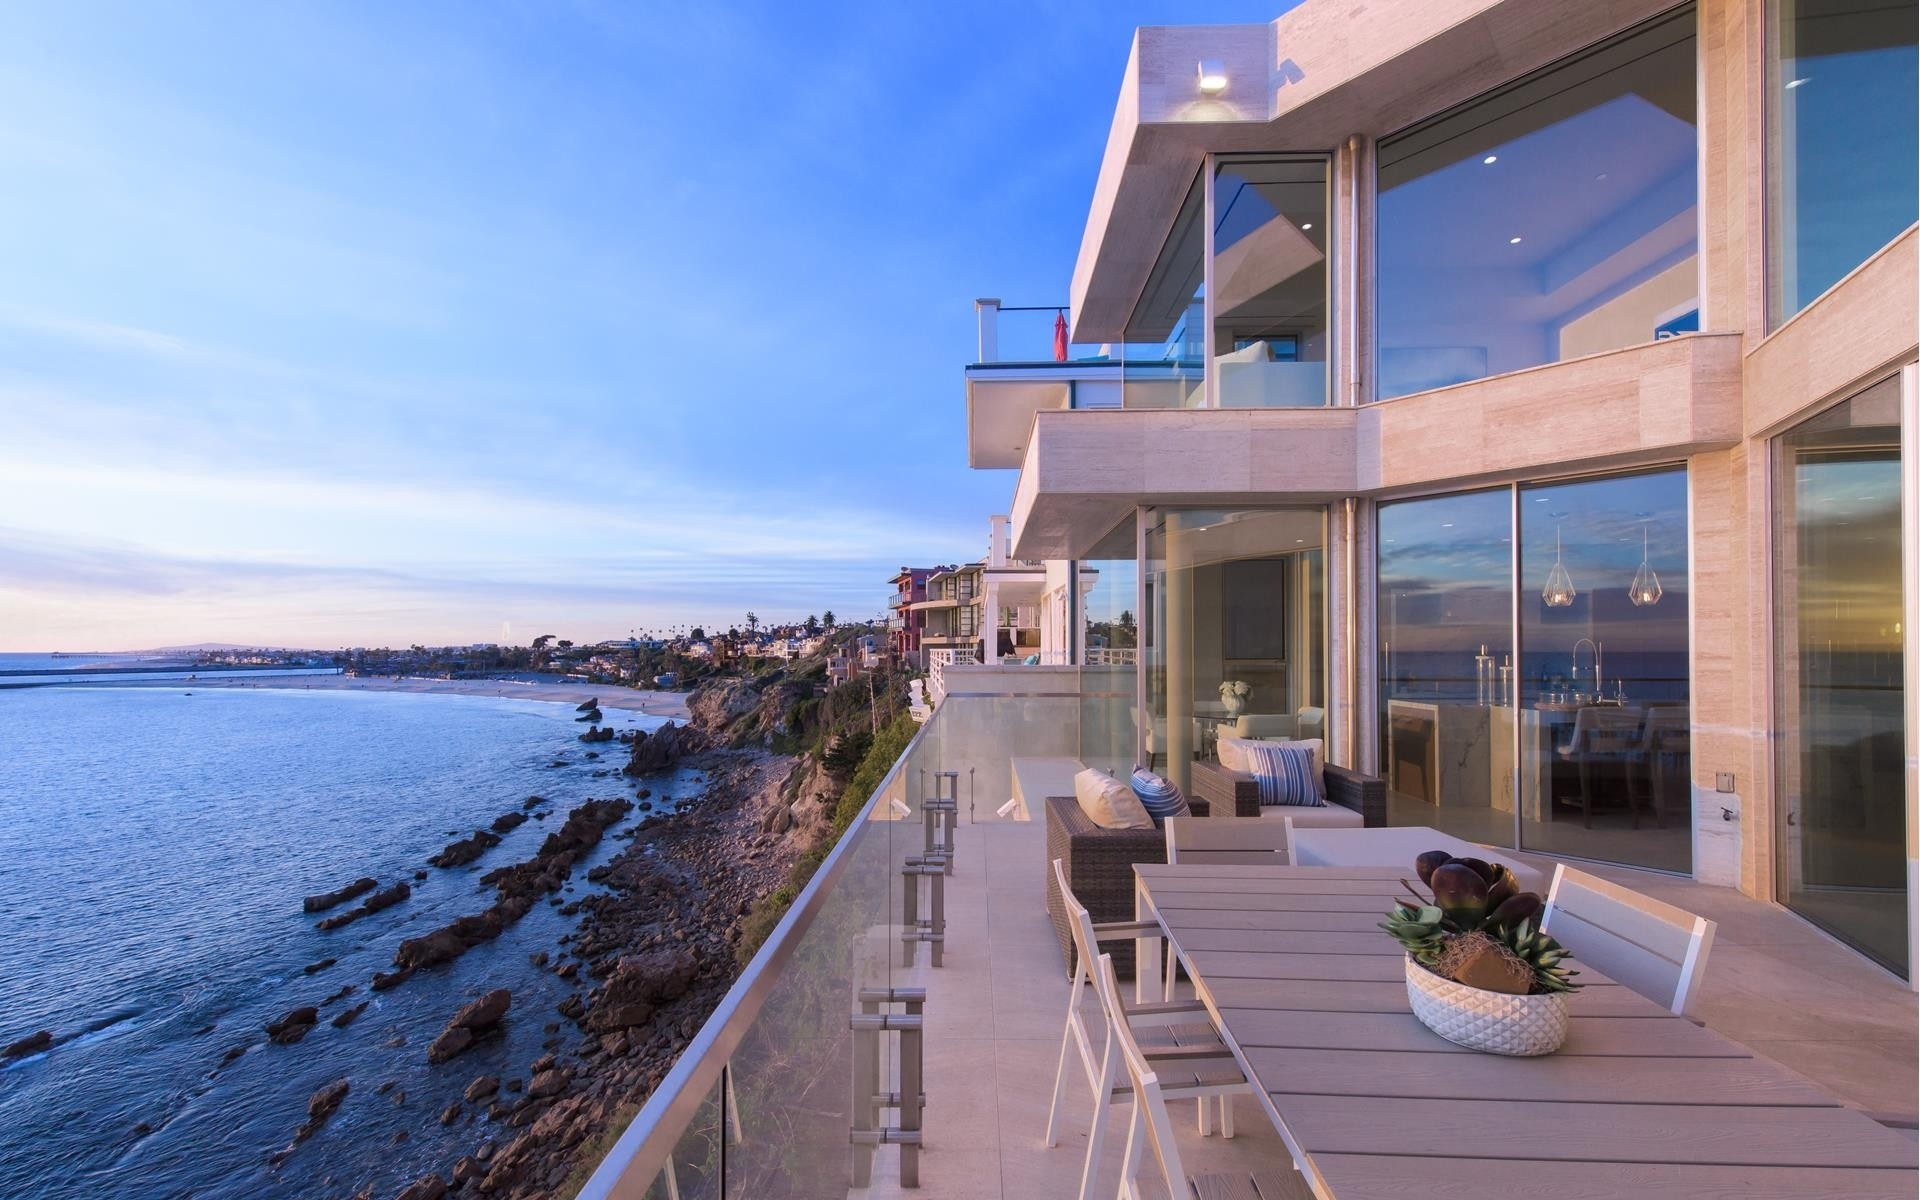 Single Family Home for Sale at Corona Del Mar, CA 92625